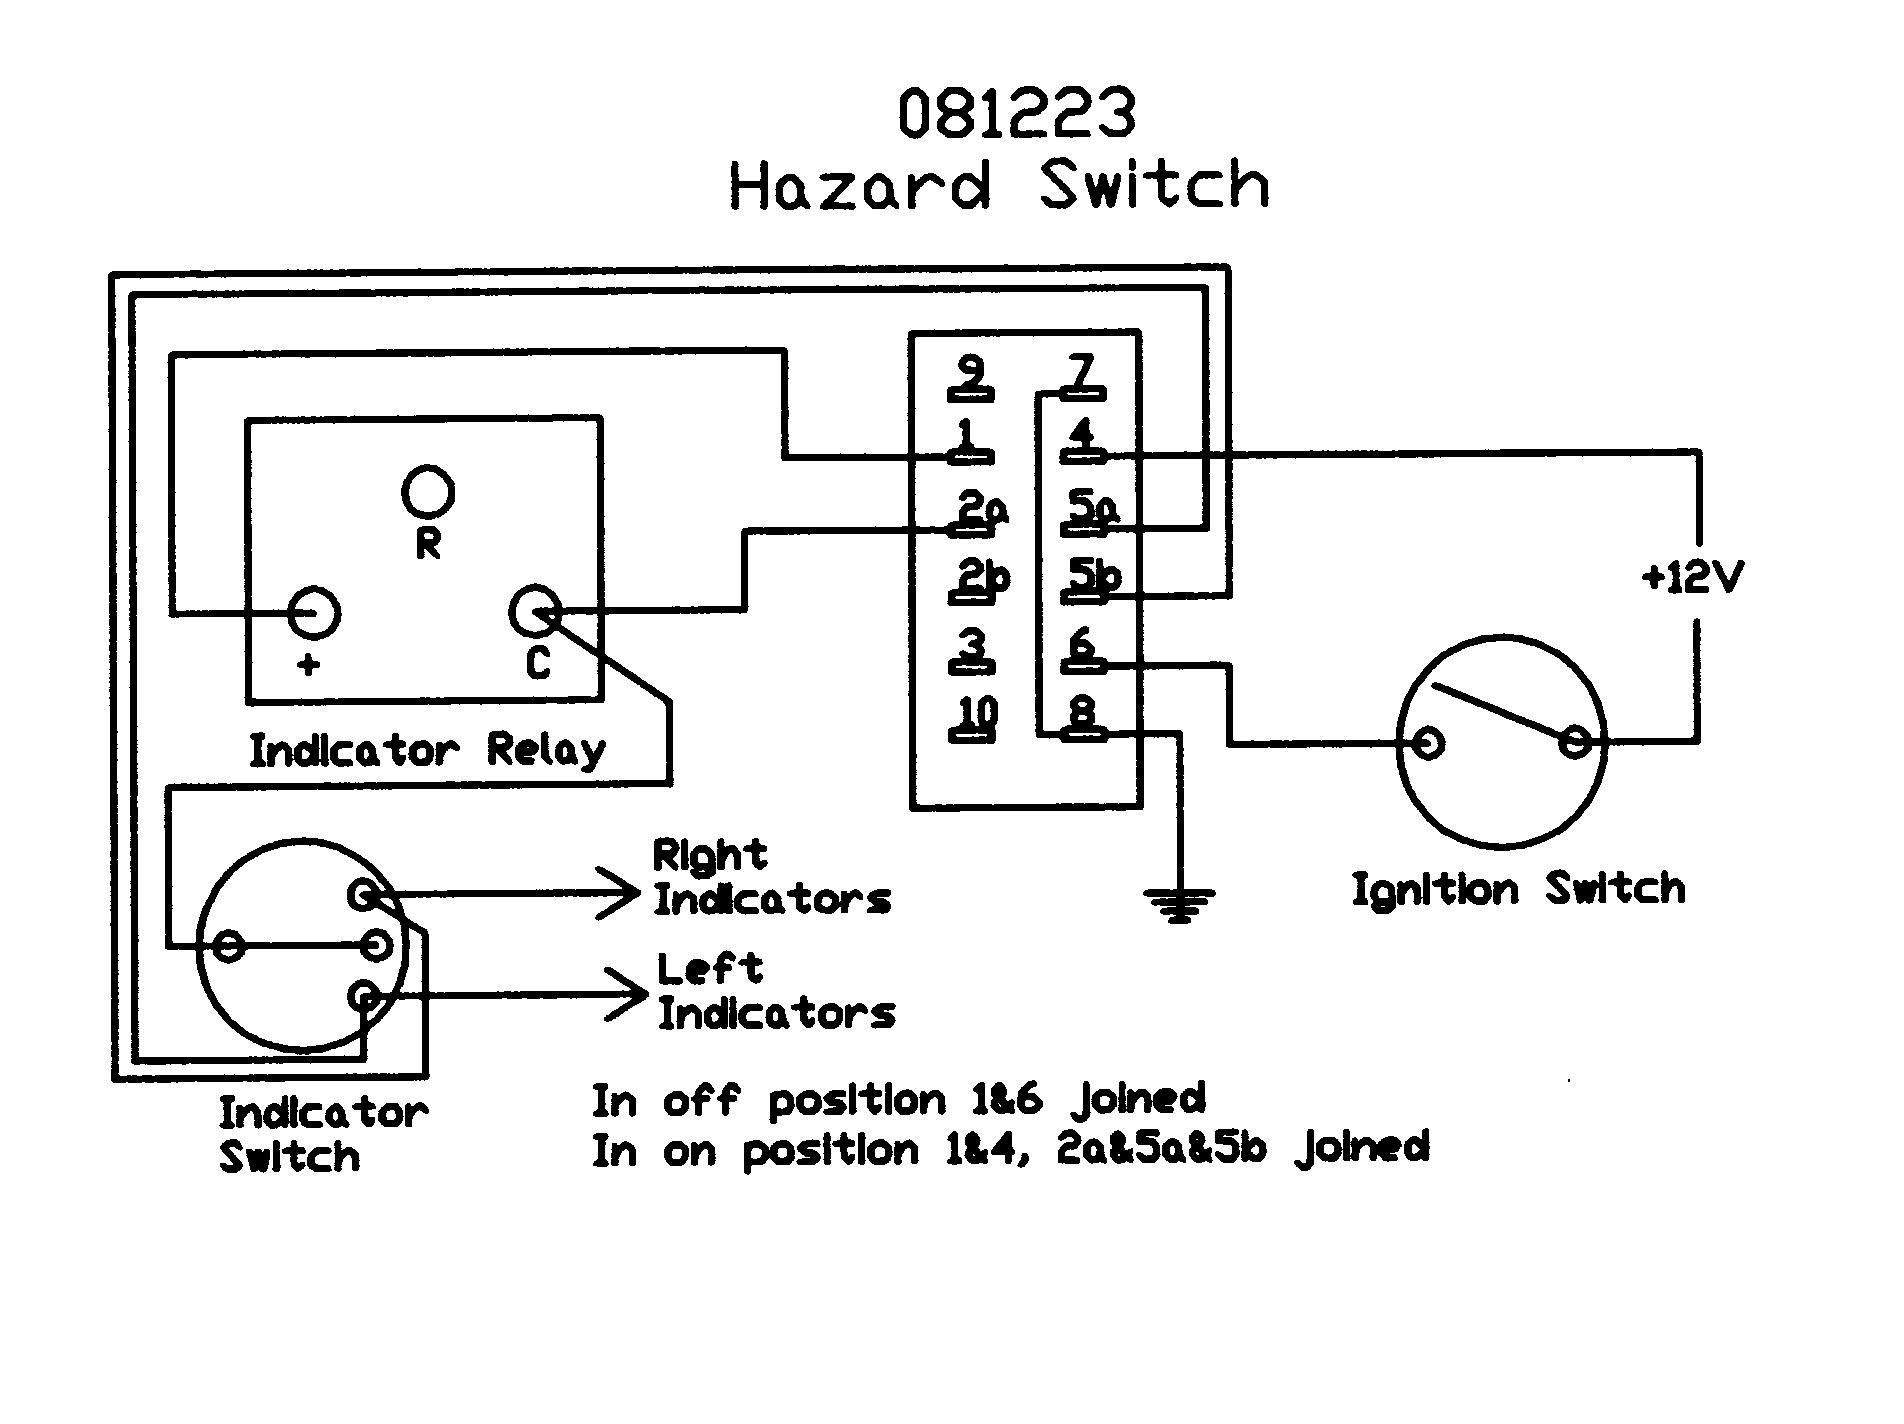 Warn Rocker Switch Wiring Diagram Free Download Guide And A Lighted Toggle Simple Diagrams Rh 22 Studio011 De Marine Switches Dual